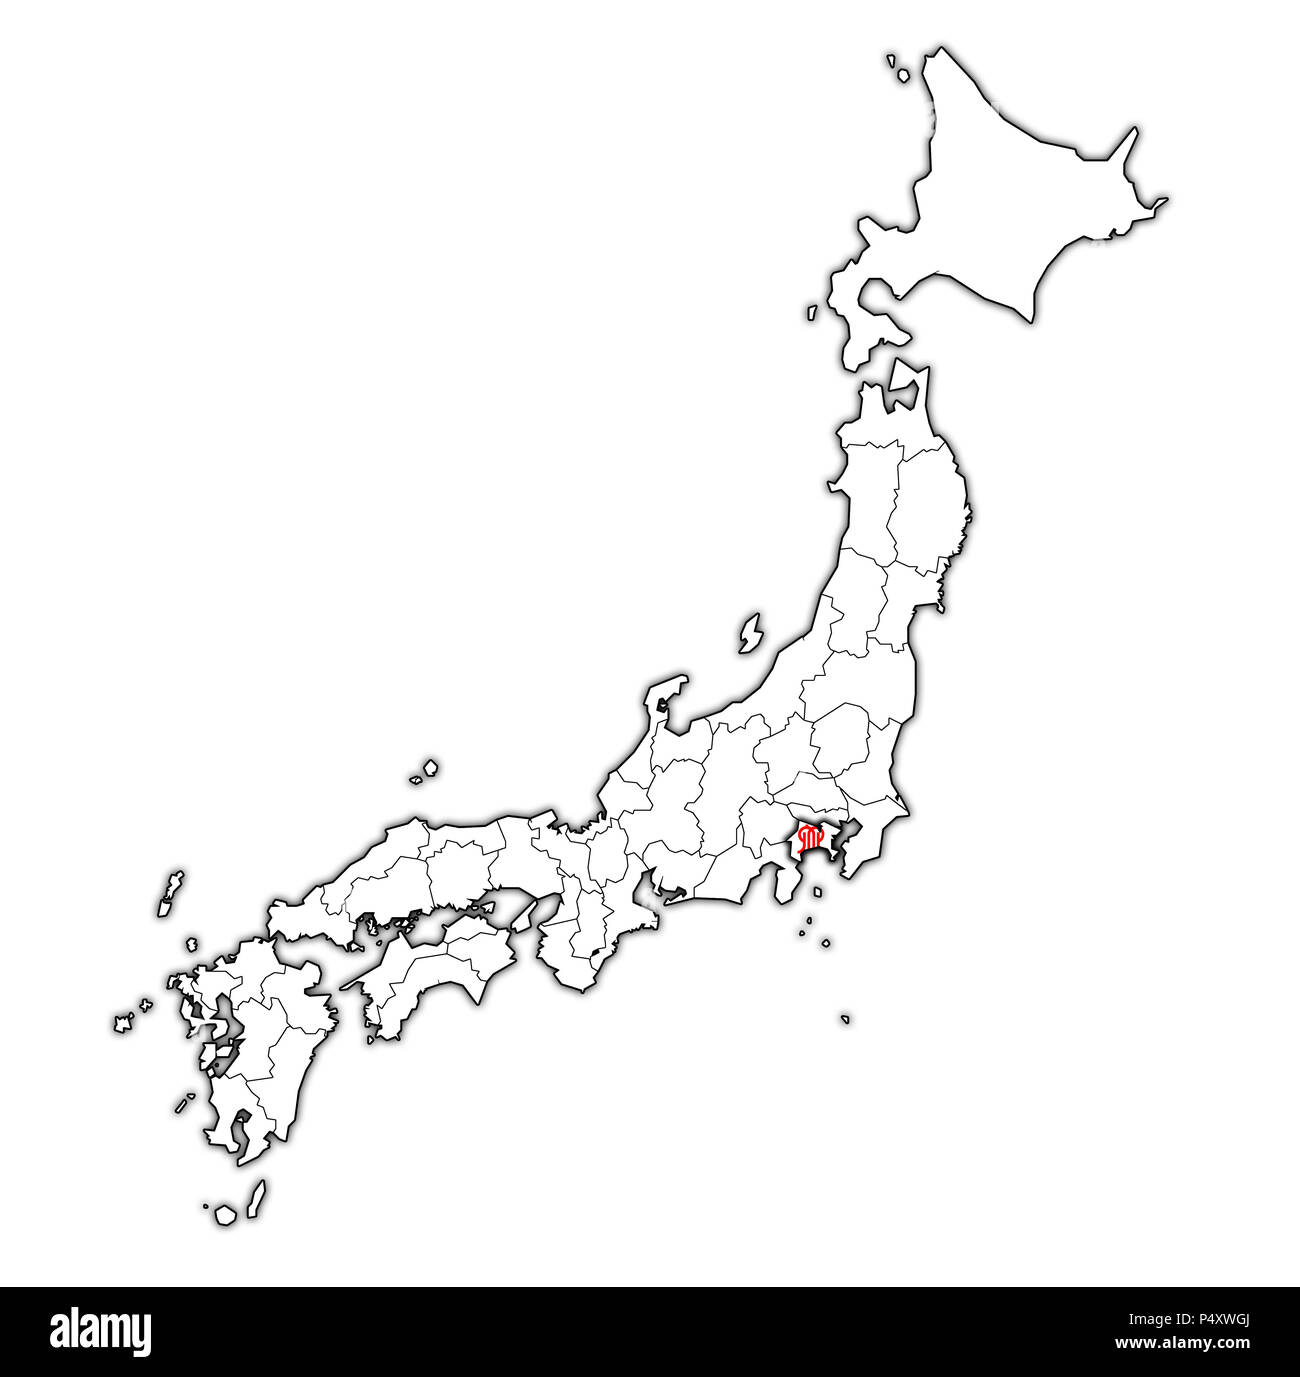 kanagawa flag of Troms prefecture on map with administrative divisions and borders of japan - Stock Image